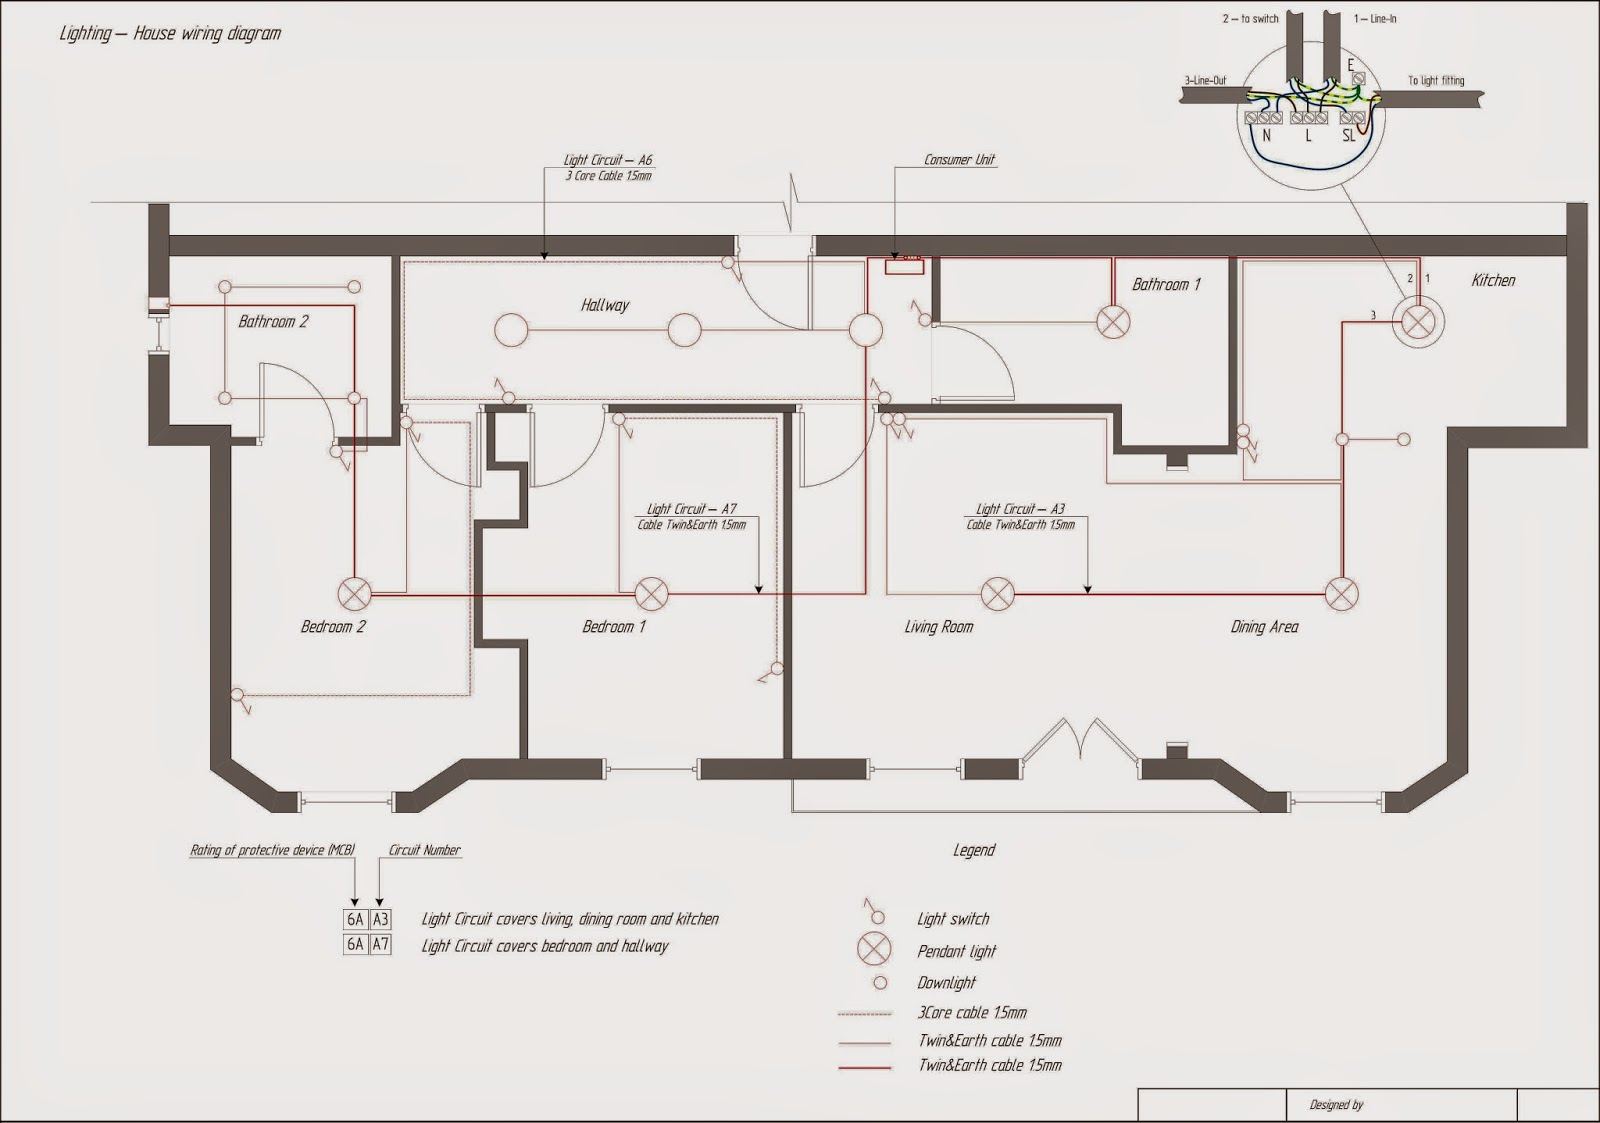 House Wiring Diagrams : House wiring diagram ex les get free image about